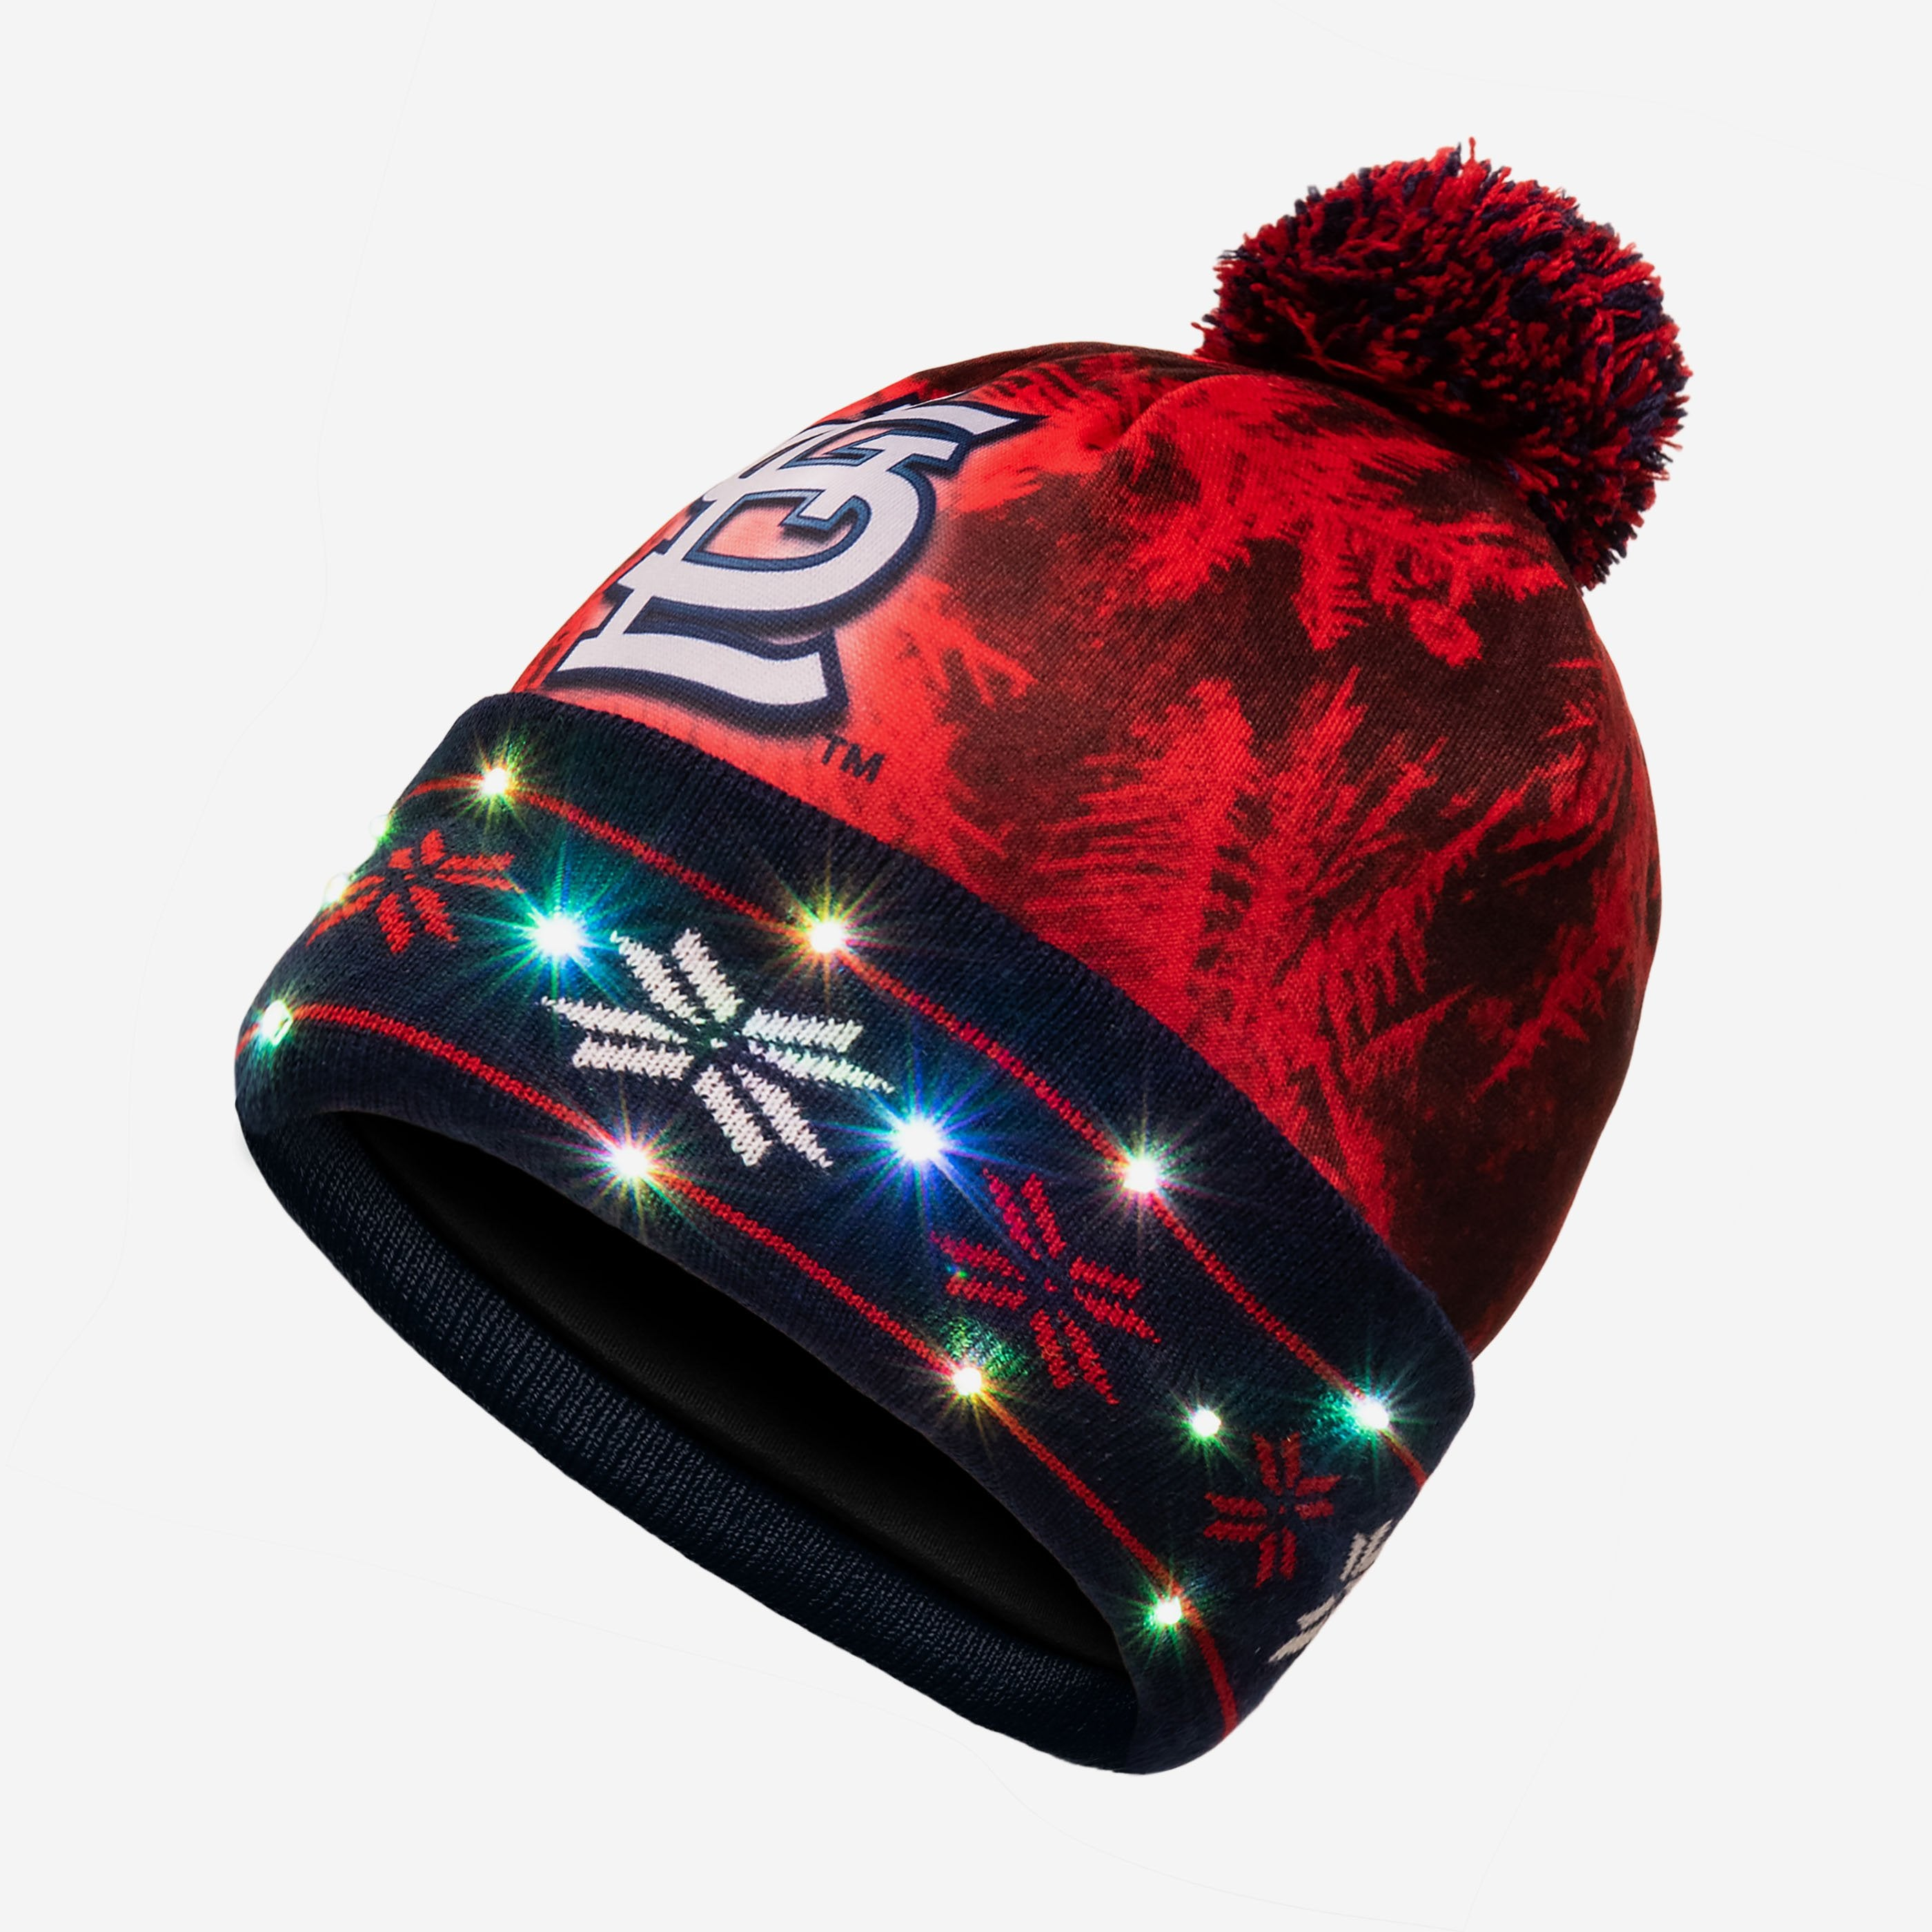 reputable site 3bfb0 6f026 St Louis Cardinals Big Logo Light Up Beanie FOCO.com